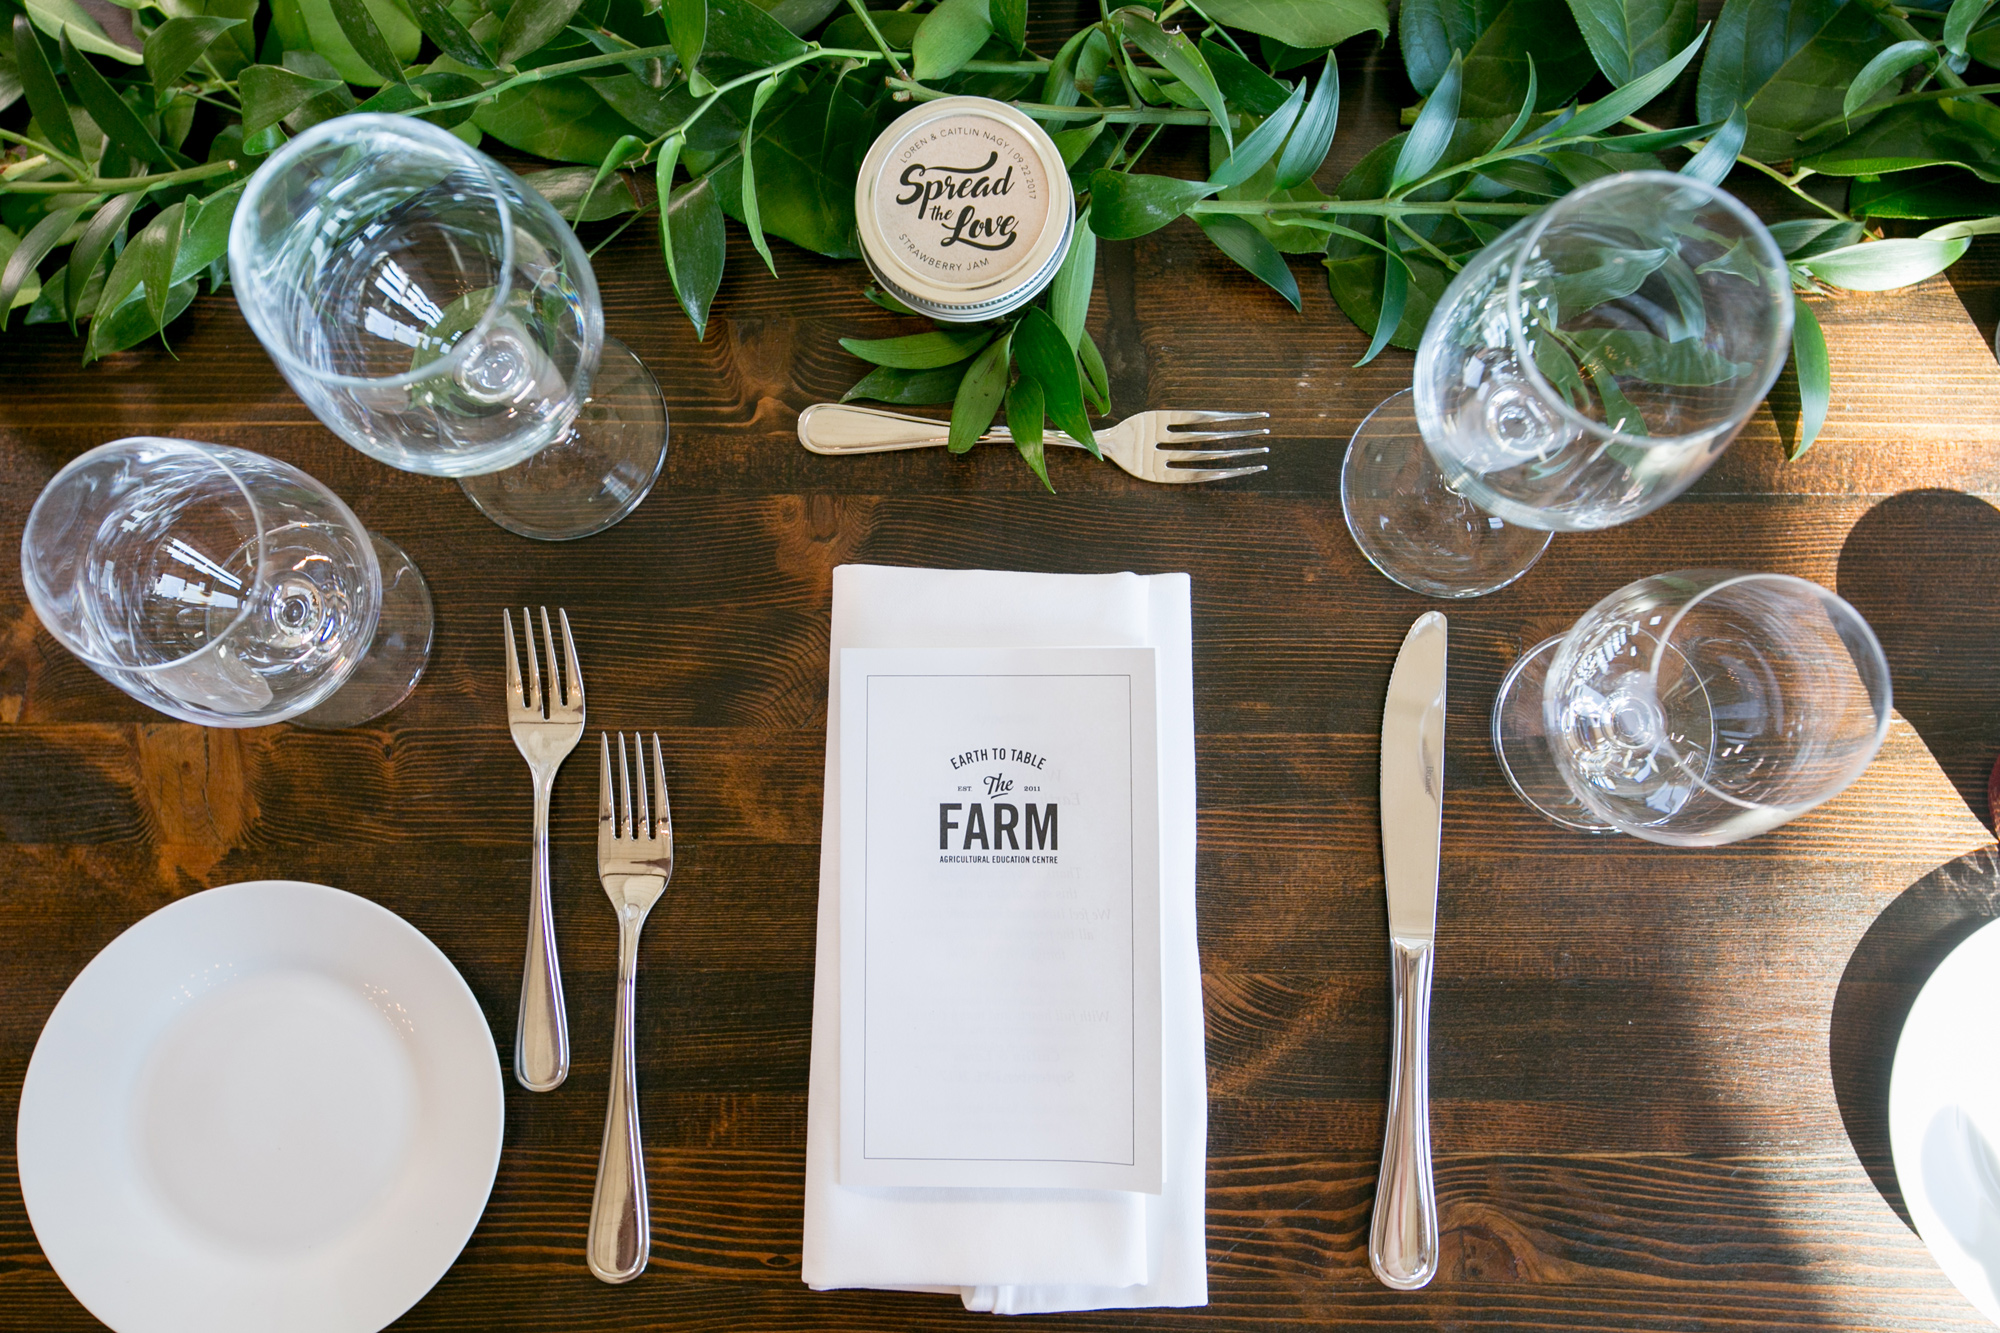 264-earth-to-table-farm-wedding.jpg